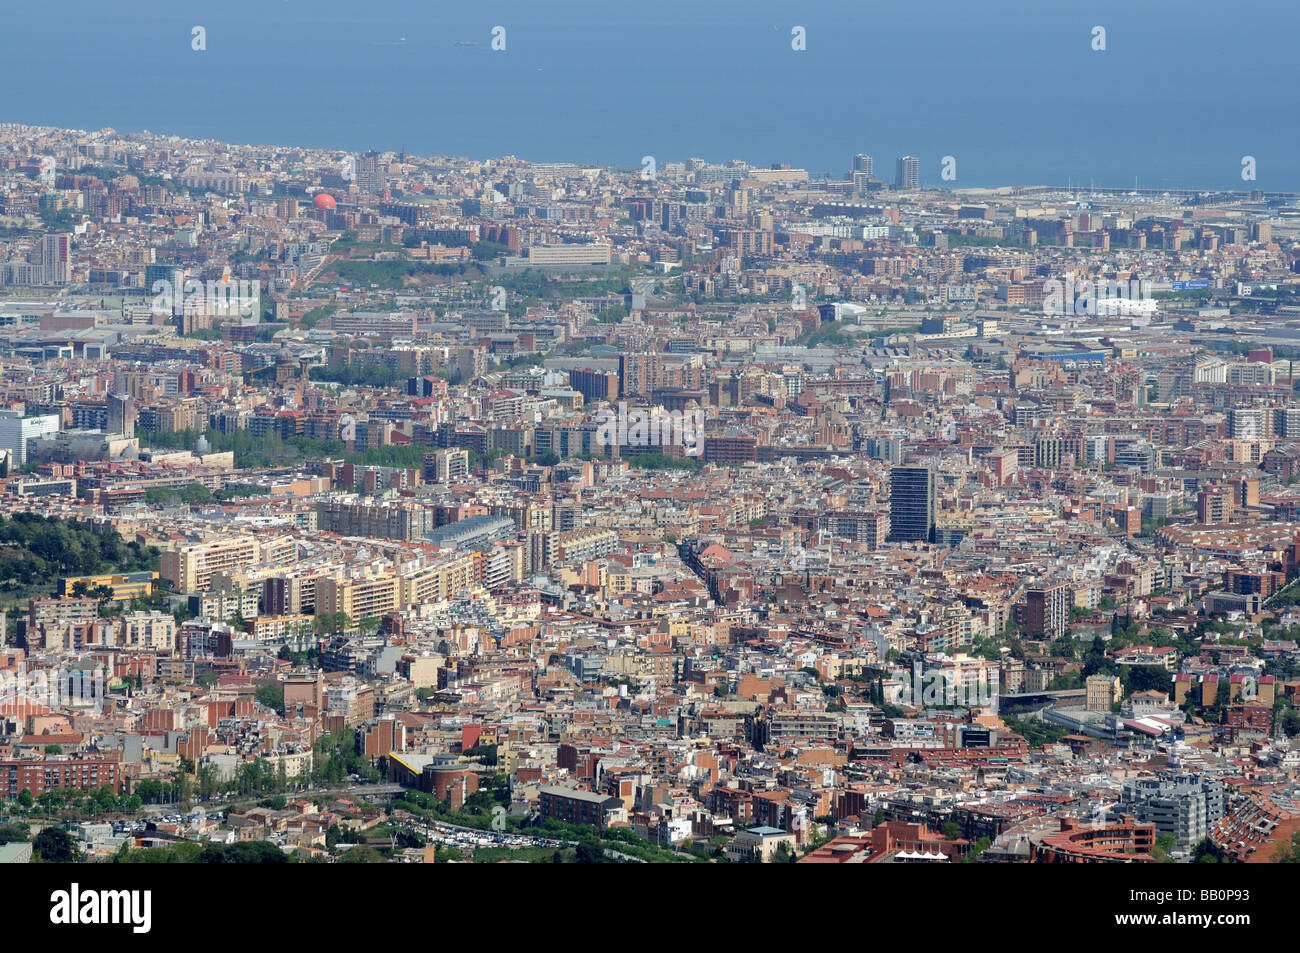 Aerial View Of Barcelona Spain Stock Photo 23989087 Alamy